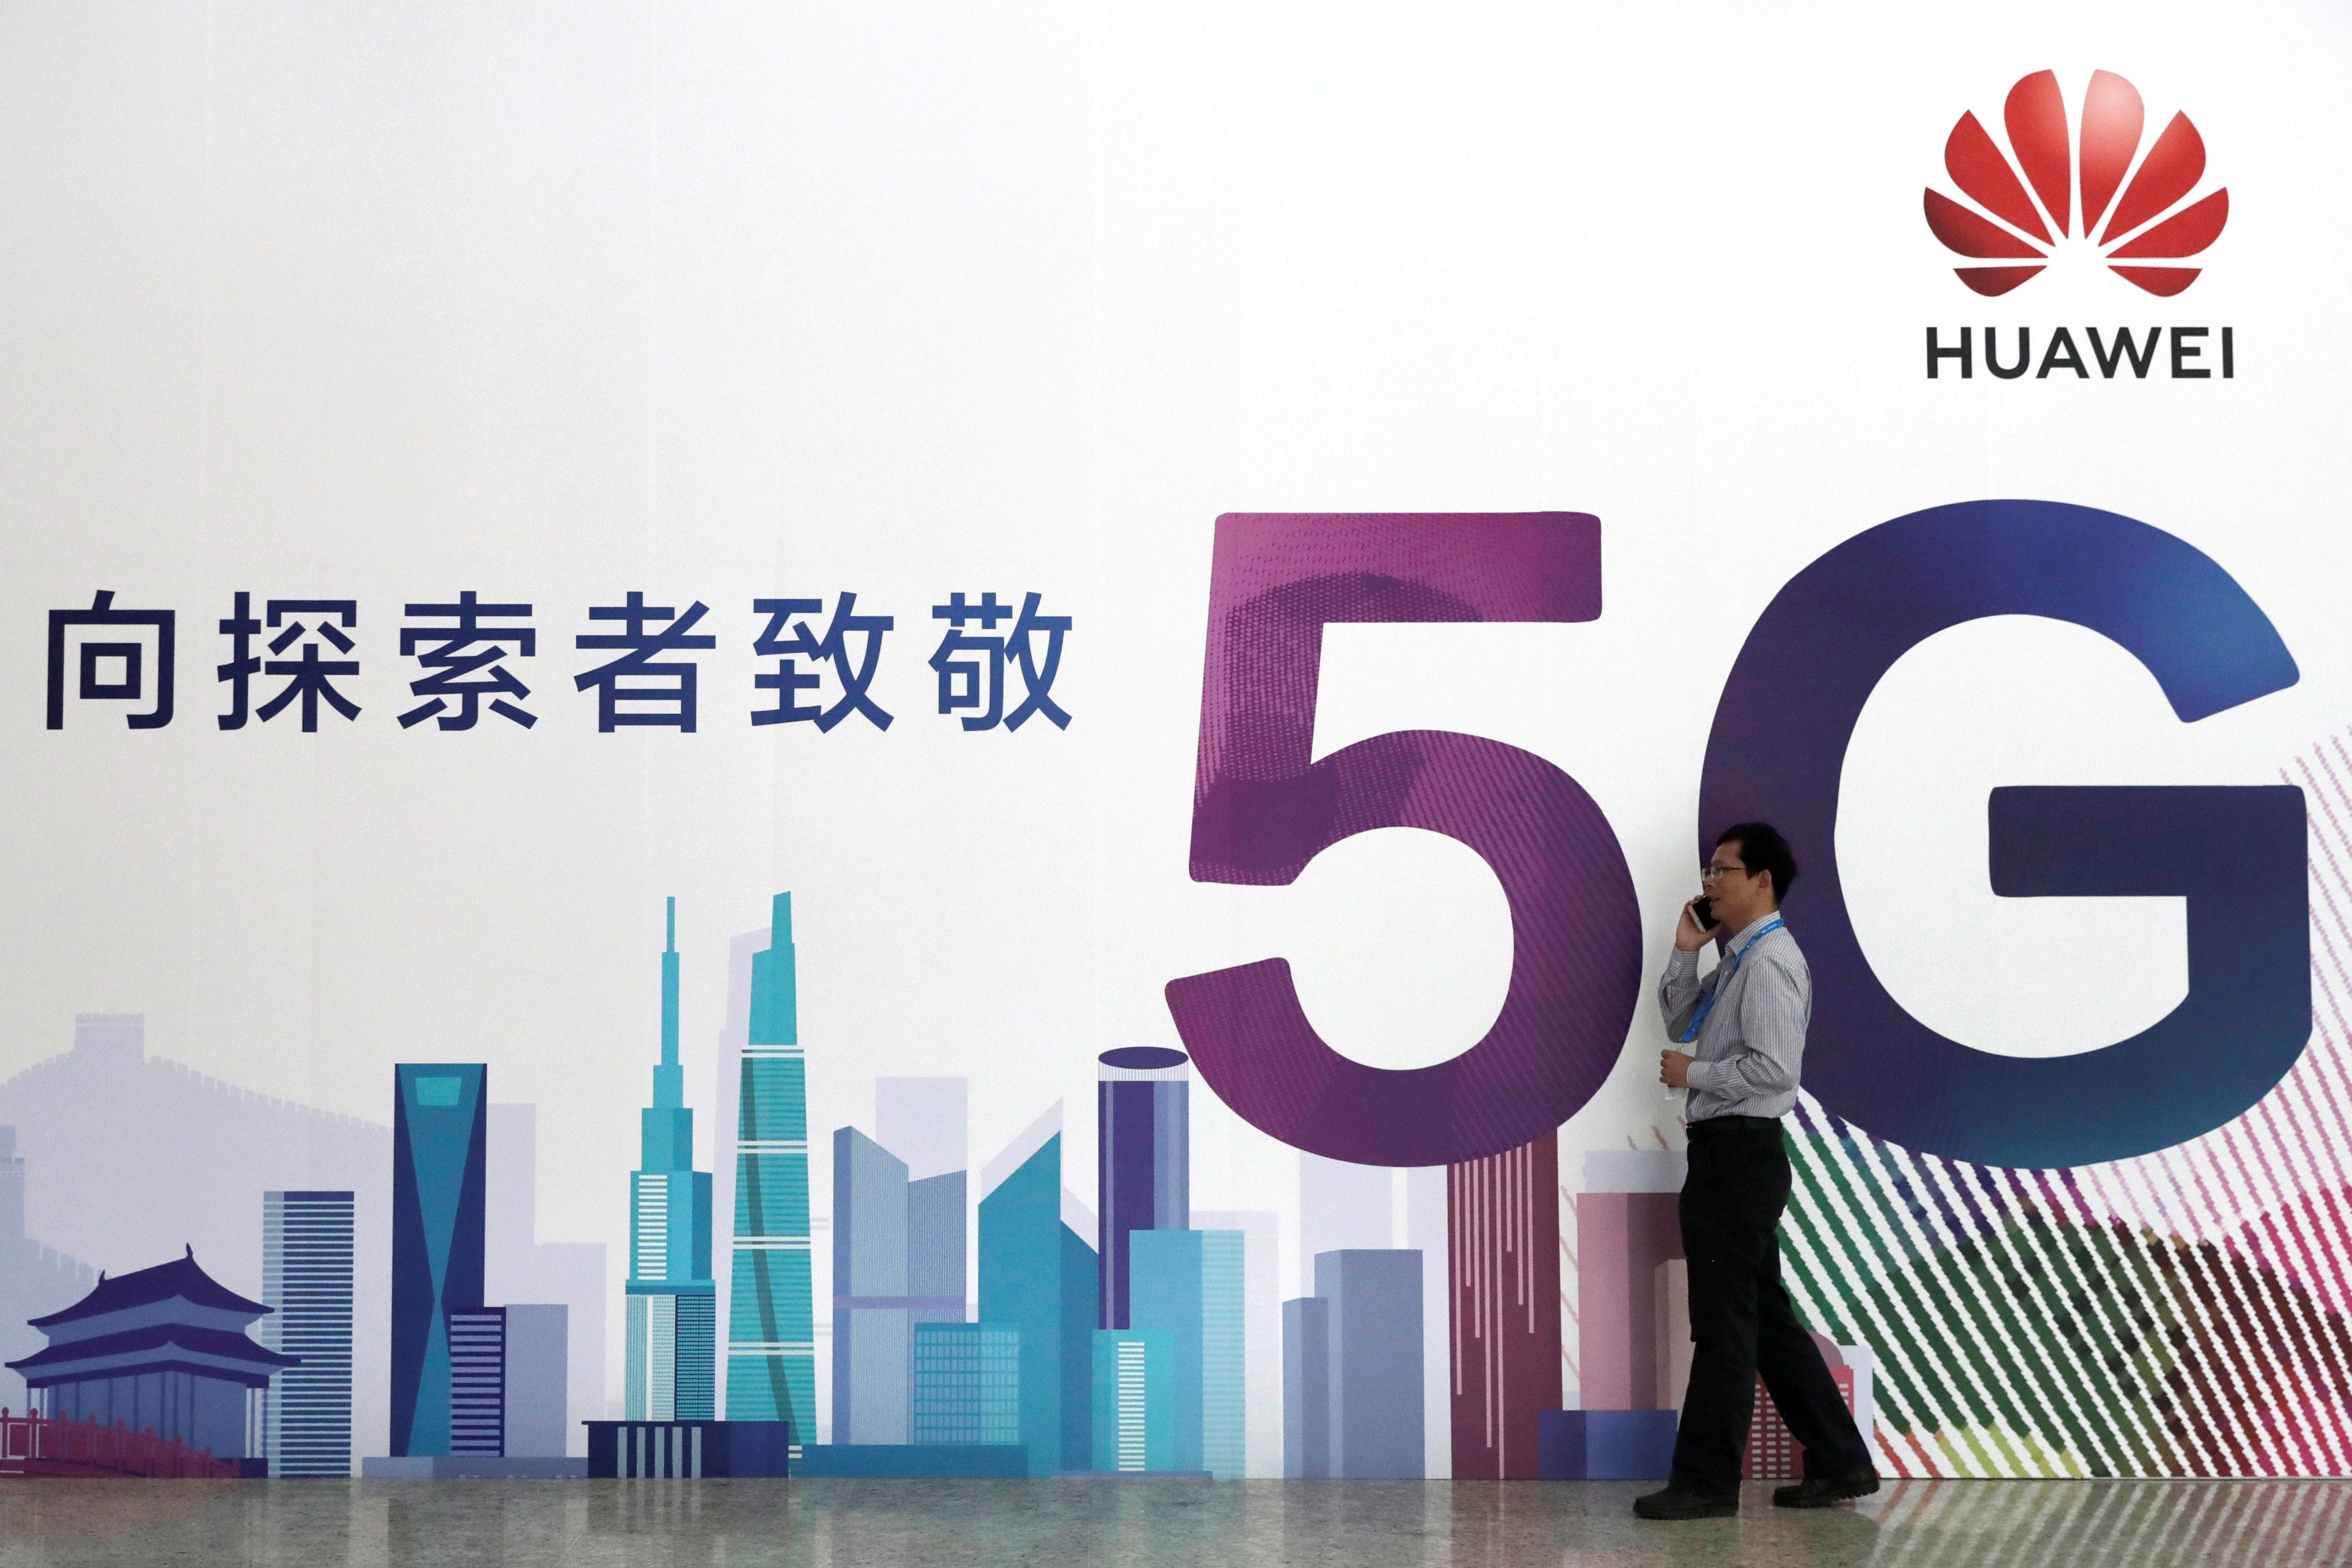 Huawei rivals Nokia, Ericsson no shoo-in for 5G contracts as China